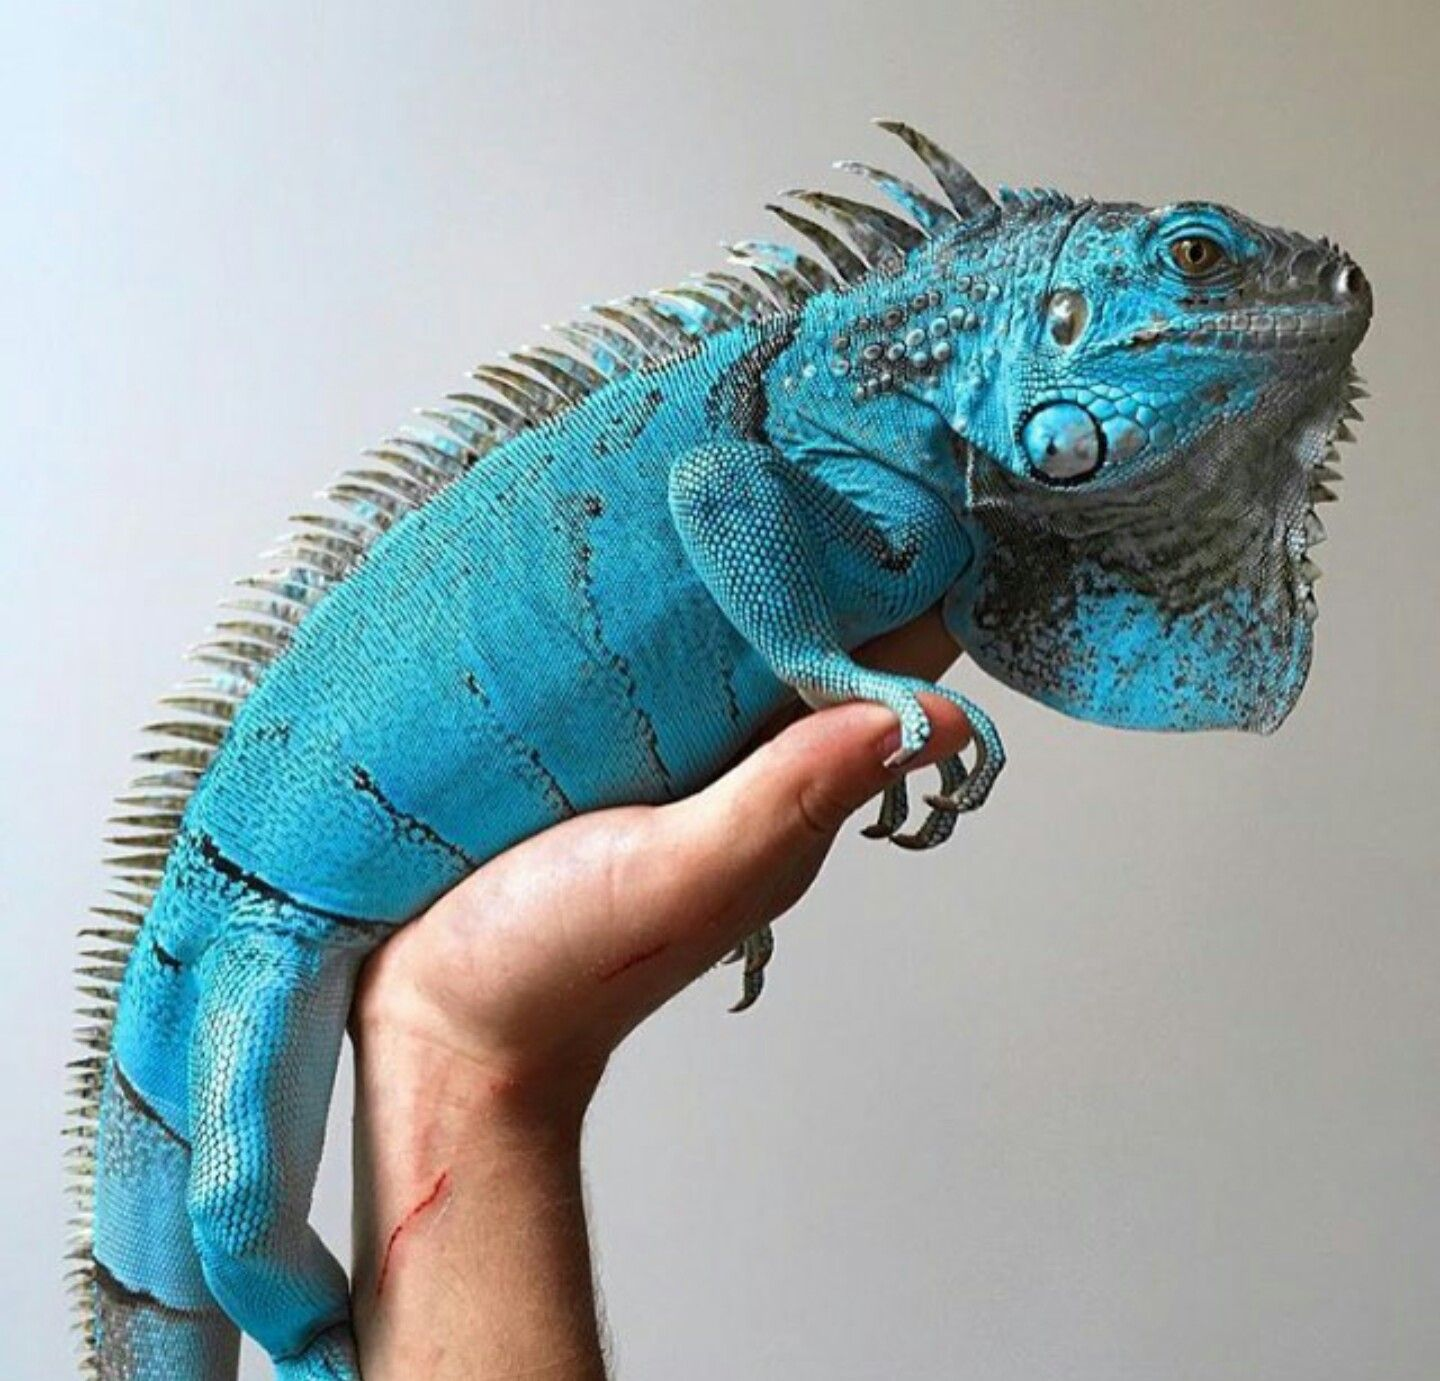 Blue Iguana | LMAO Zoo Animals | Pinterest | Reptiles ...